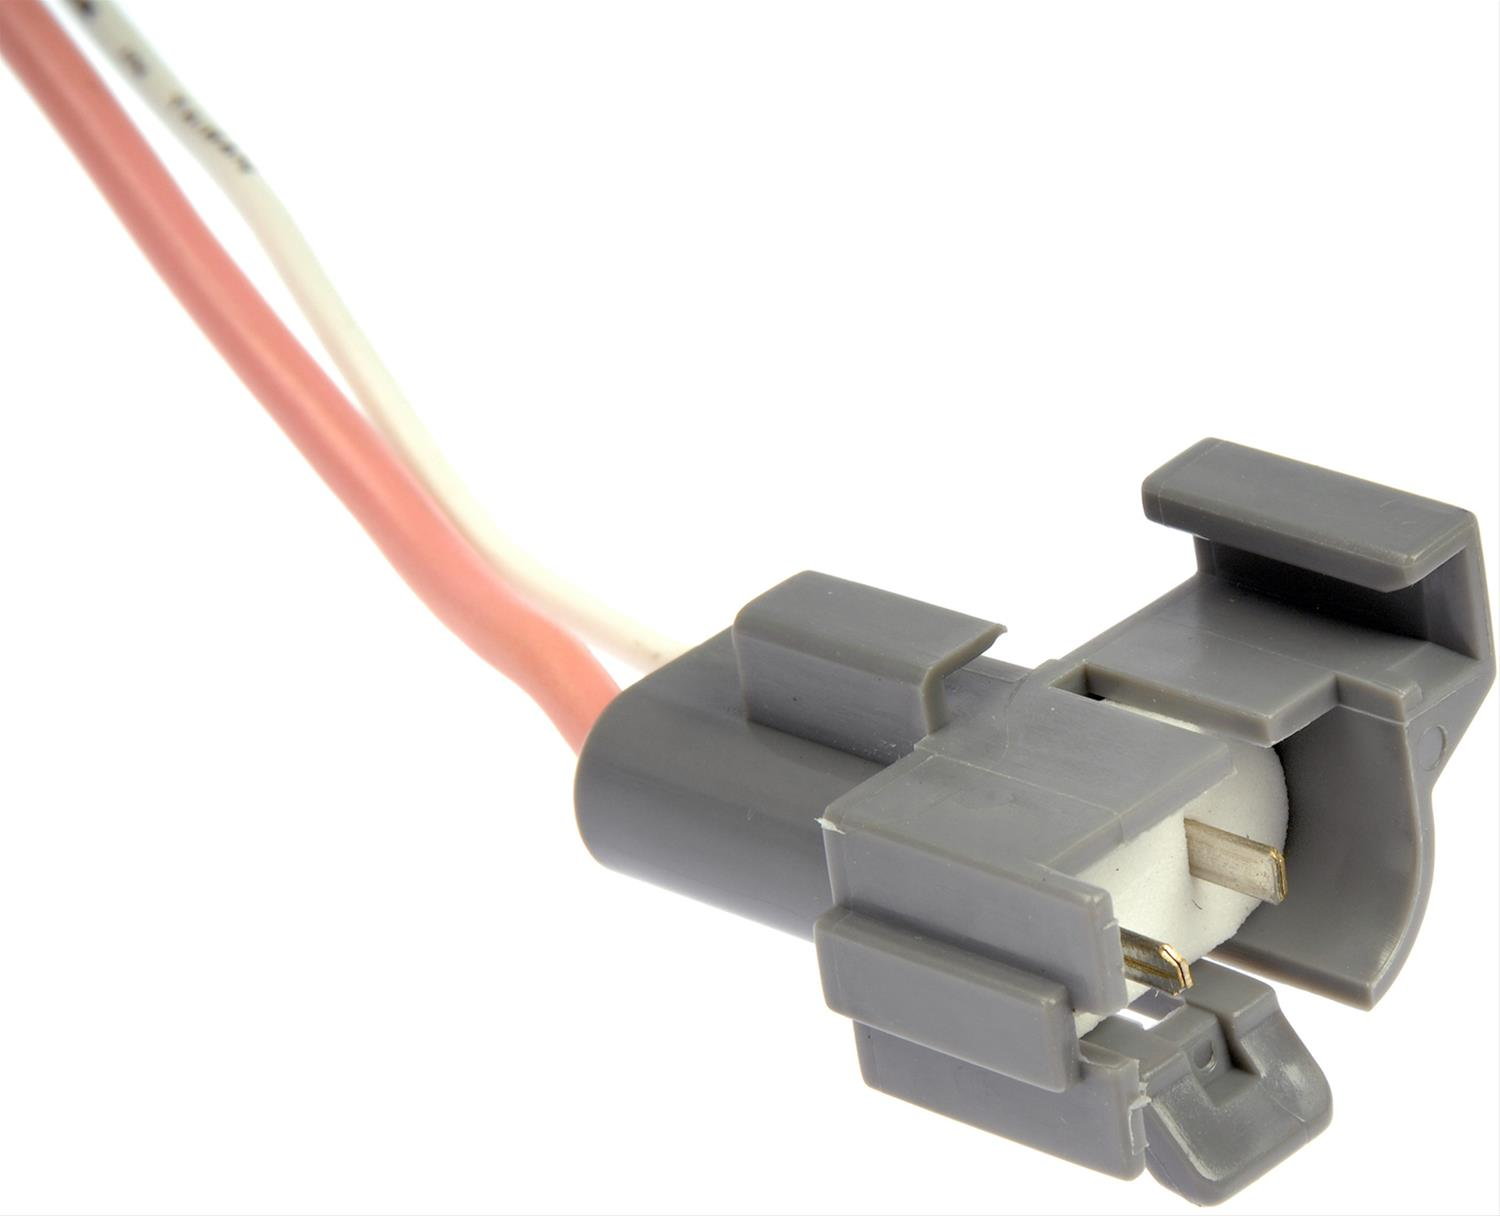 Ignition Coil Dorman 85119 Ignition Coil Connector-Pigtail Connector